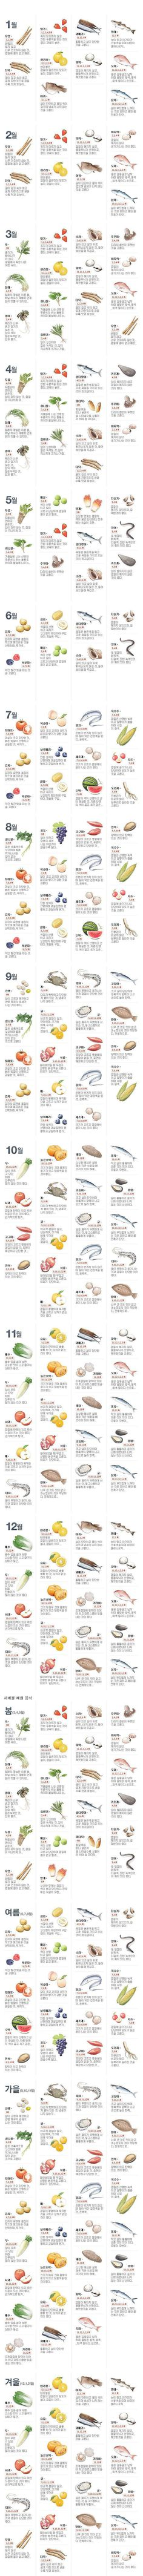 Cooking Tips, Cooking Recipes, Good Food, Yummy Food, Food Categories, Nutrition Information, Korean Food, Food Design, Fun Drinks